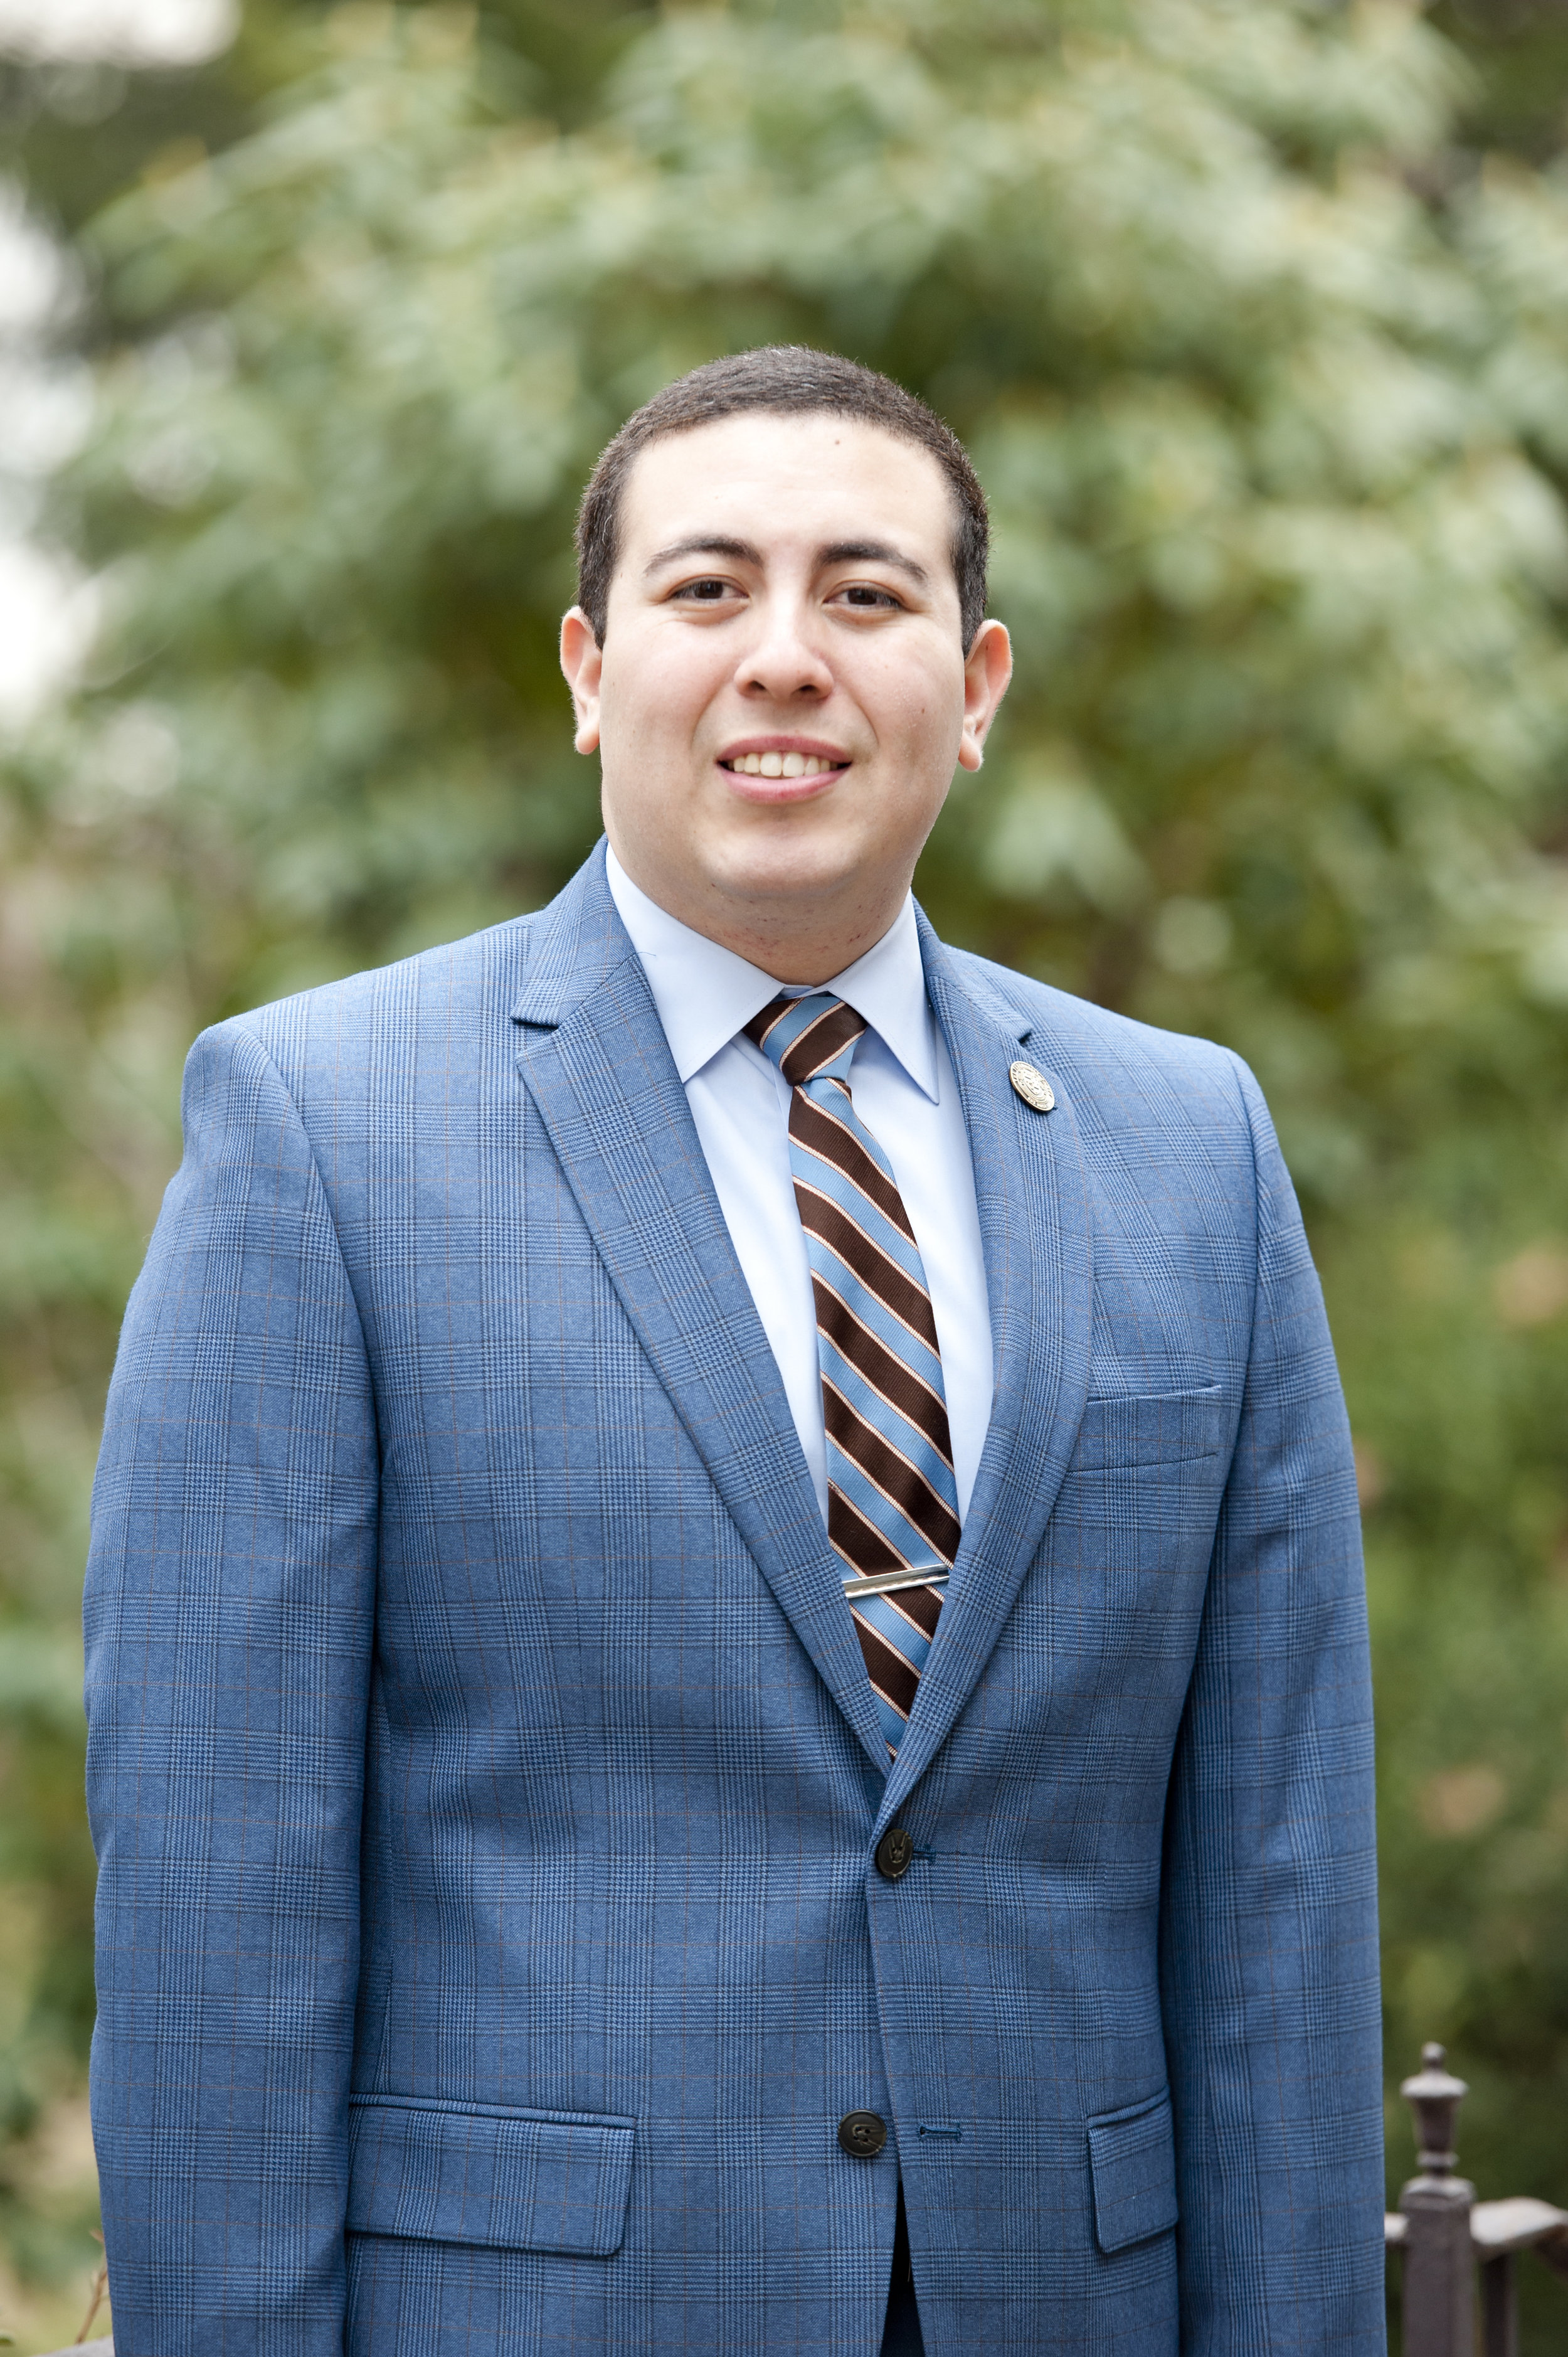 Gabriel Ozuna, Spring 2018 John Jay Fellow, graduated from Yale University with a degree in History.